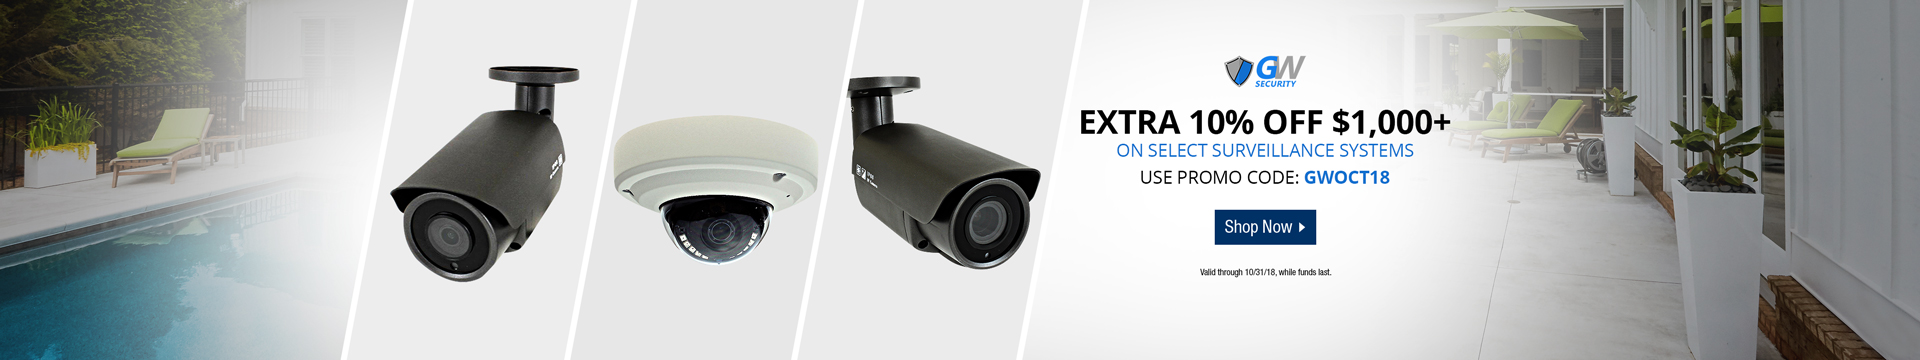 10% off 1000+ on Surveillance Systems with Promo Code